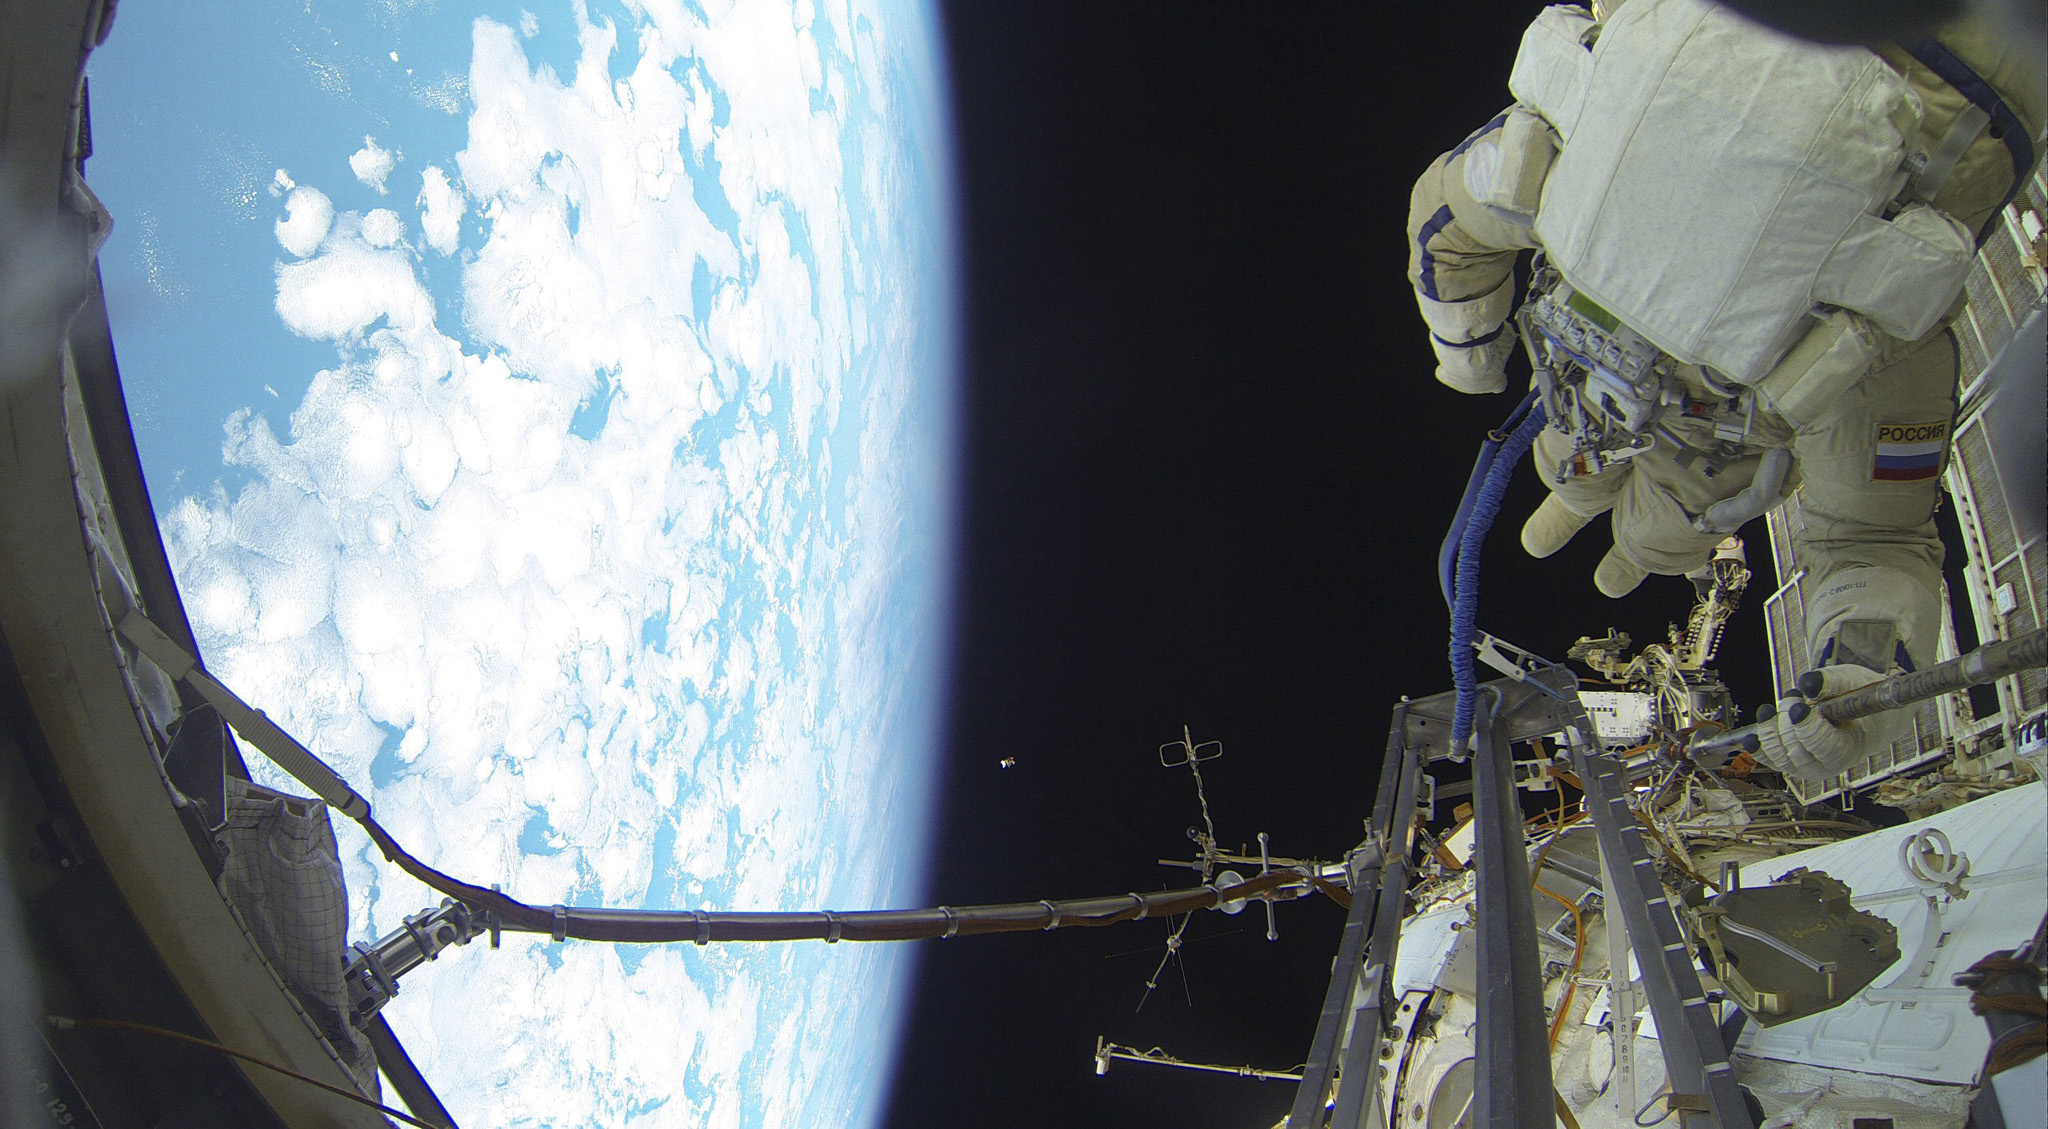 International Space Station crew member Volkov performs spacewalk outside ISS...International Space Station (ISS) expedition 46/47 crew member, Russian cosmonaut Sergei Volkov performs a spacewalk outside the ISS in this Roscosmos image released on February 7, 2016. REUTERS/Roscosmos/Handout via Reuters ATTENTION EDITORS - THIS PICTURE WAS PROVIDED BY A THIRD PARTY. REUTERS IS UNABLE TO INDEPENDENTLY VERIFY THE AUTHENTICITY, CONTENT, LOCATION OR DATE OF THIS IMAGE. FOR EDITORIAL USE ONLY. NOT FOR SALE FOR MARKETING OR ADVERTISING CAMPAIGNS. FOR EDITORIAL USE ONLY. NO RESALES. NO ARCHIVE. THIS PICTURE IS DISTRIBUTED EXACTLY AS RECEIVED BY REUTERS, AS A SERVICE TO CLIENTS.